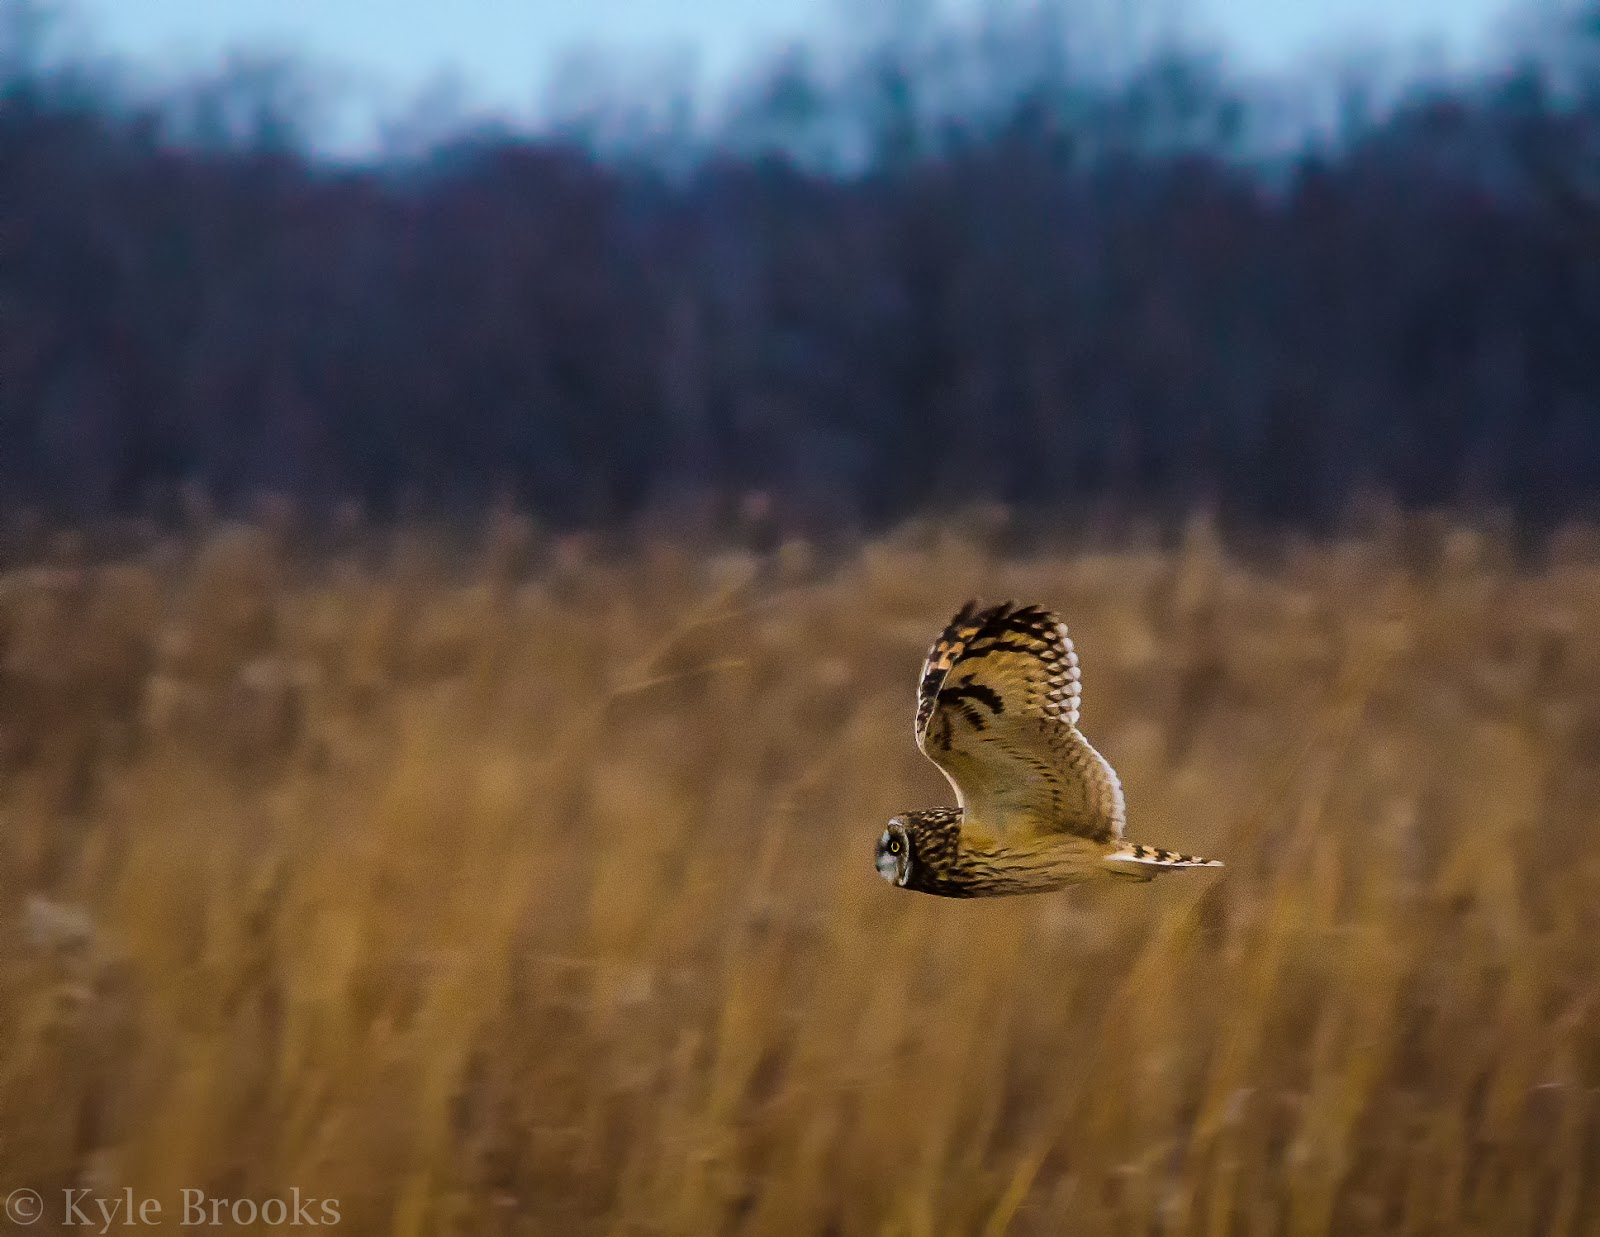 Ethics of Photographing Owls